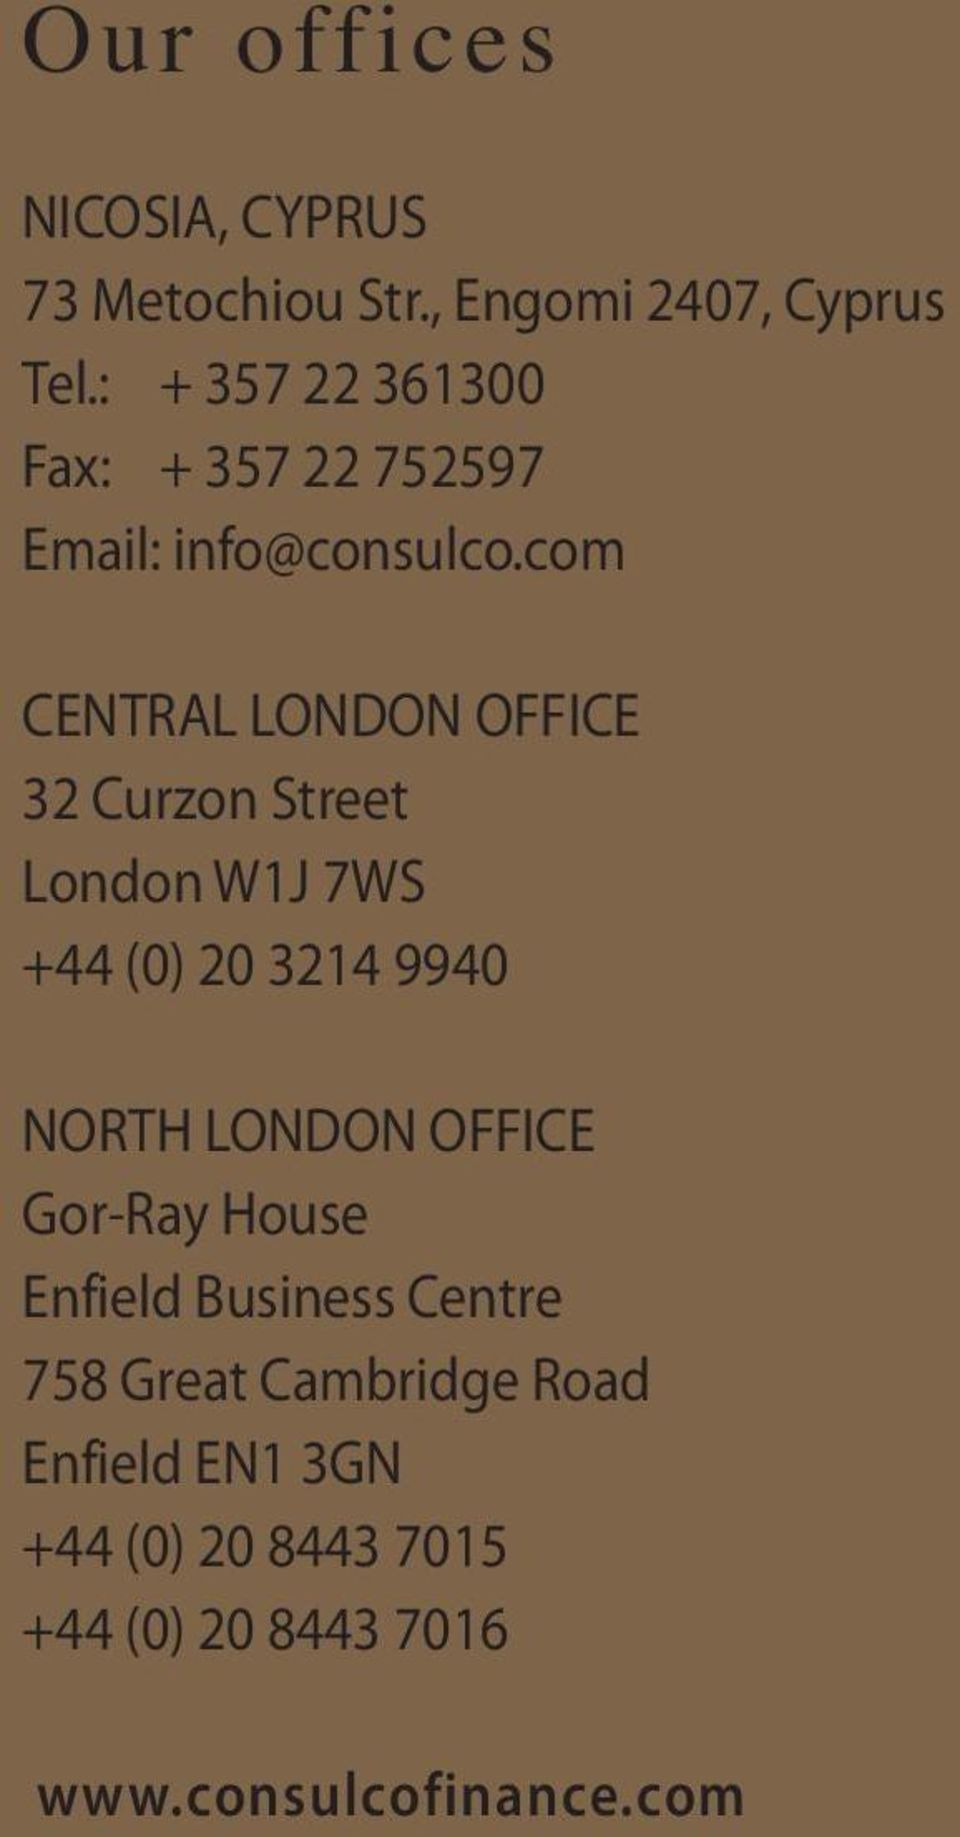 com CENTRAL LONDON OFFICE 32 Curzon Street London W1J 7WS +44 (0) 20 3214 9940 NORTH LONDON